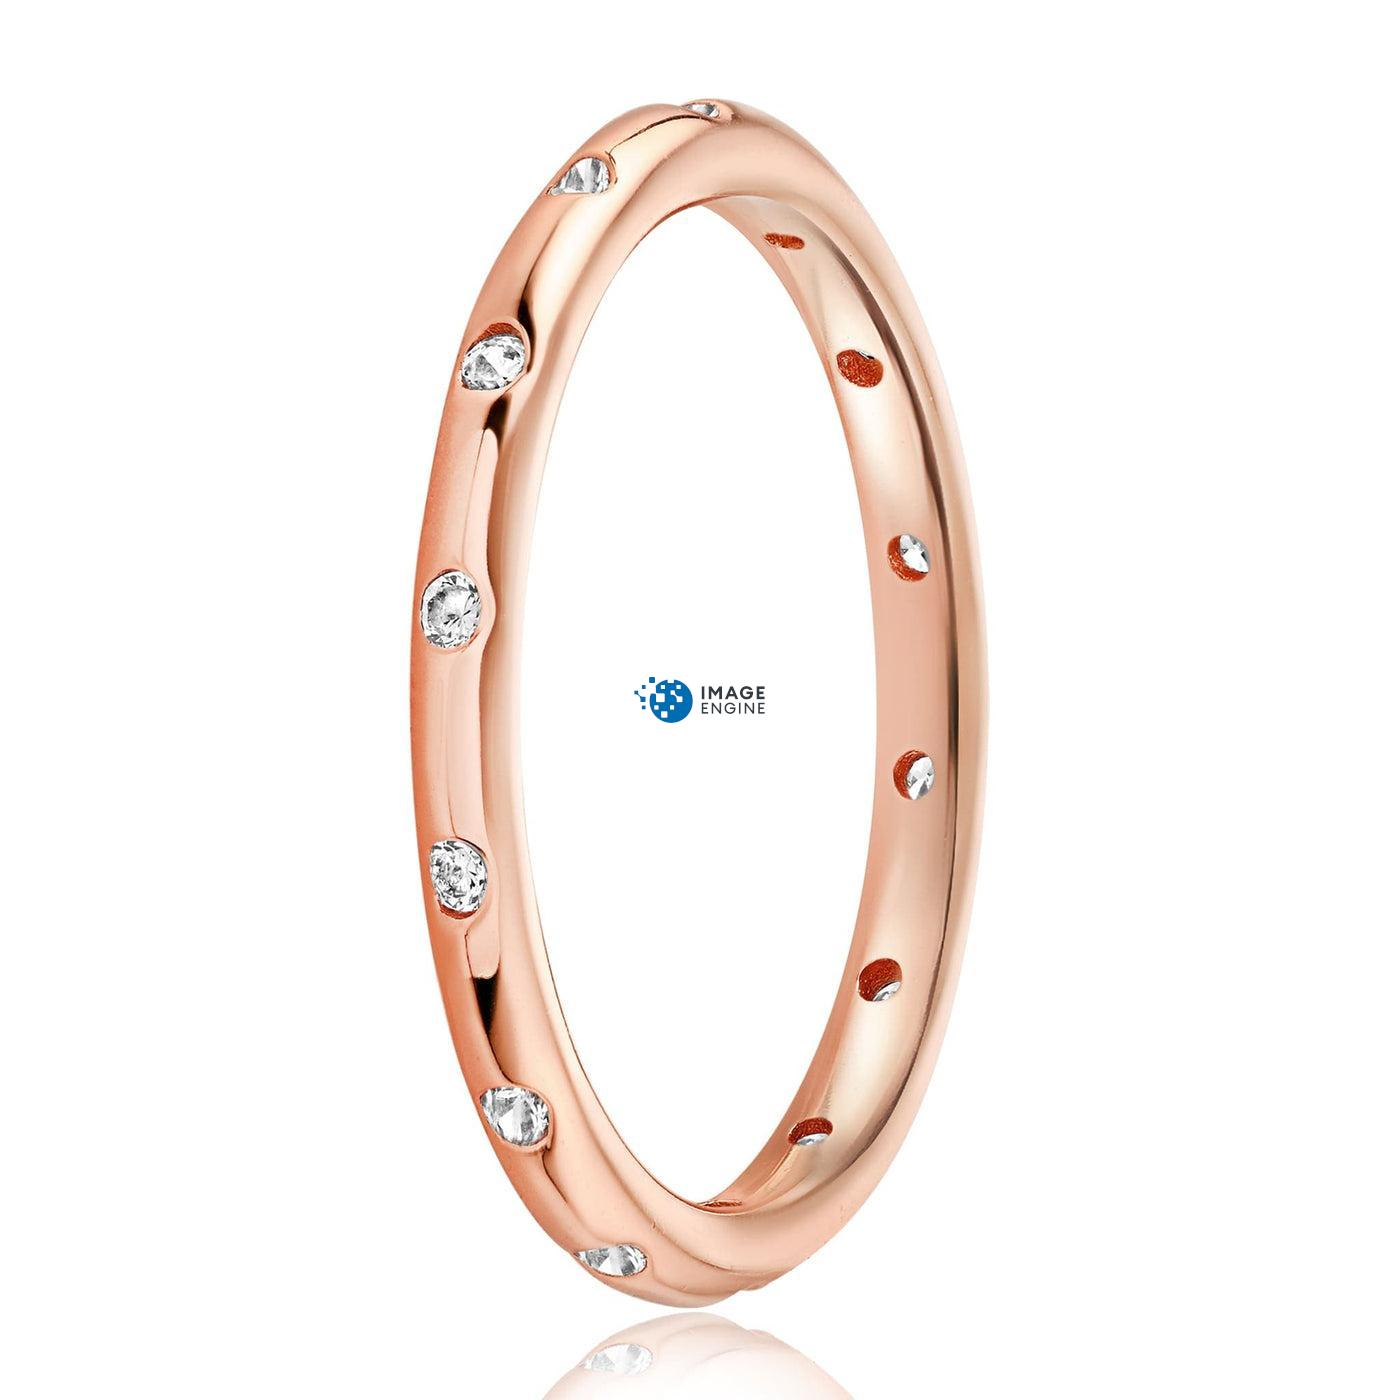 Droplet Ring - Side View - 18K Rose Gold Vermeil